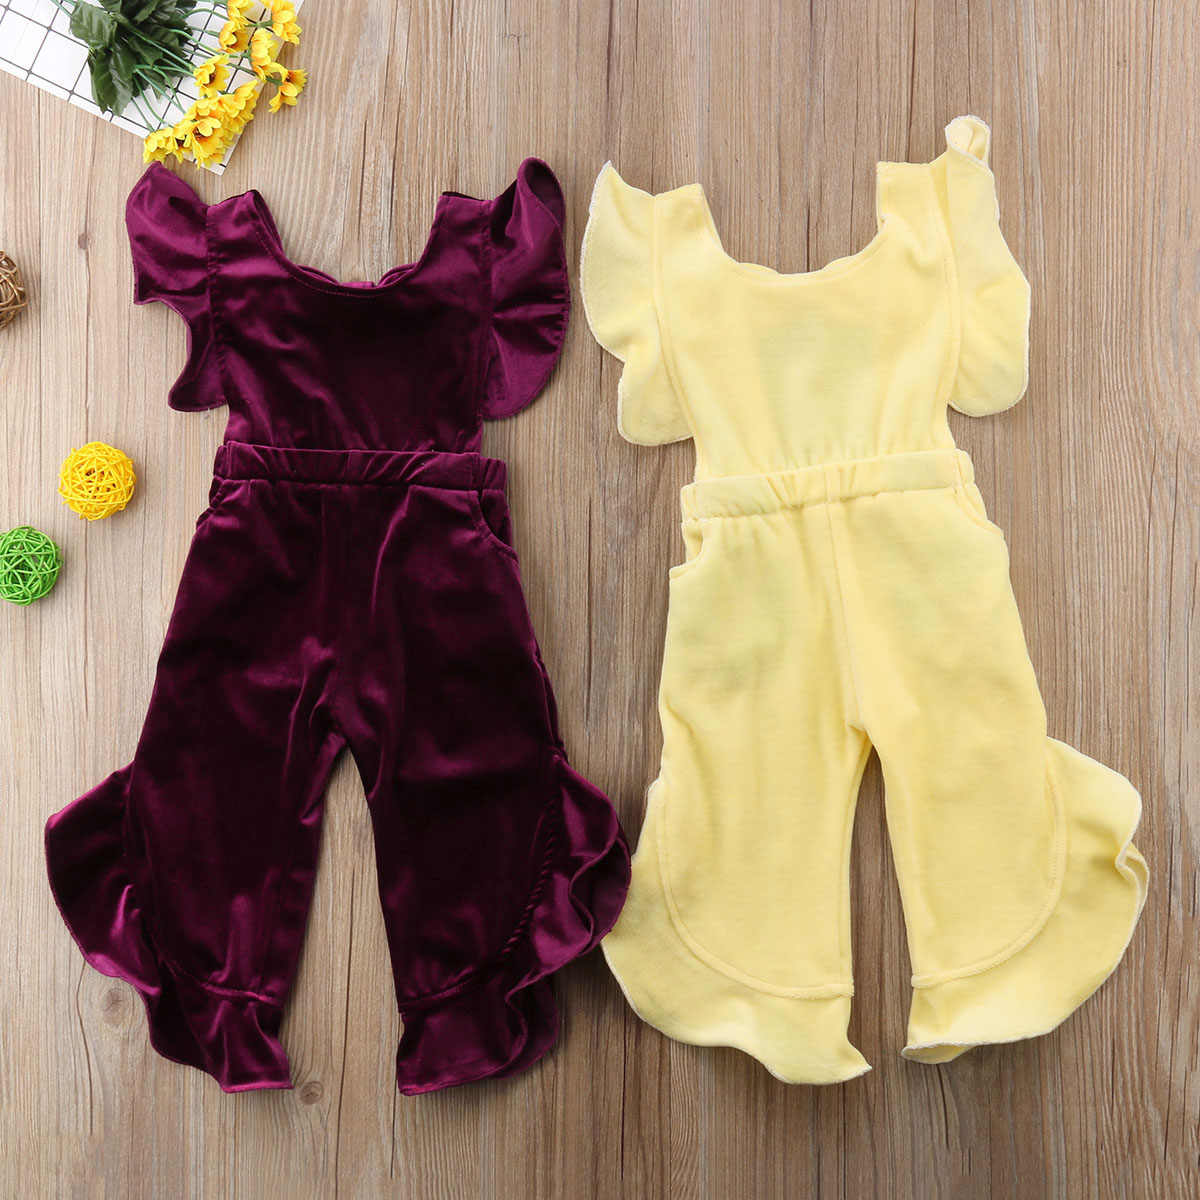 3a9ef7fa2c0 Detail Feedback Questions about Toddler Kids Baby Girl Clothes bow backless  Irregular sleeves Velvet Korean Velvet Long Romper Jumpsuit suede Sunsuit  Outfit ...